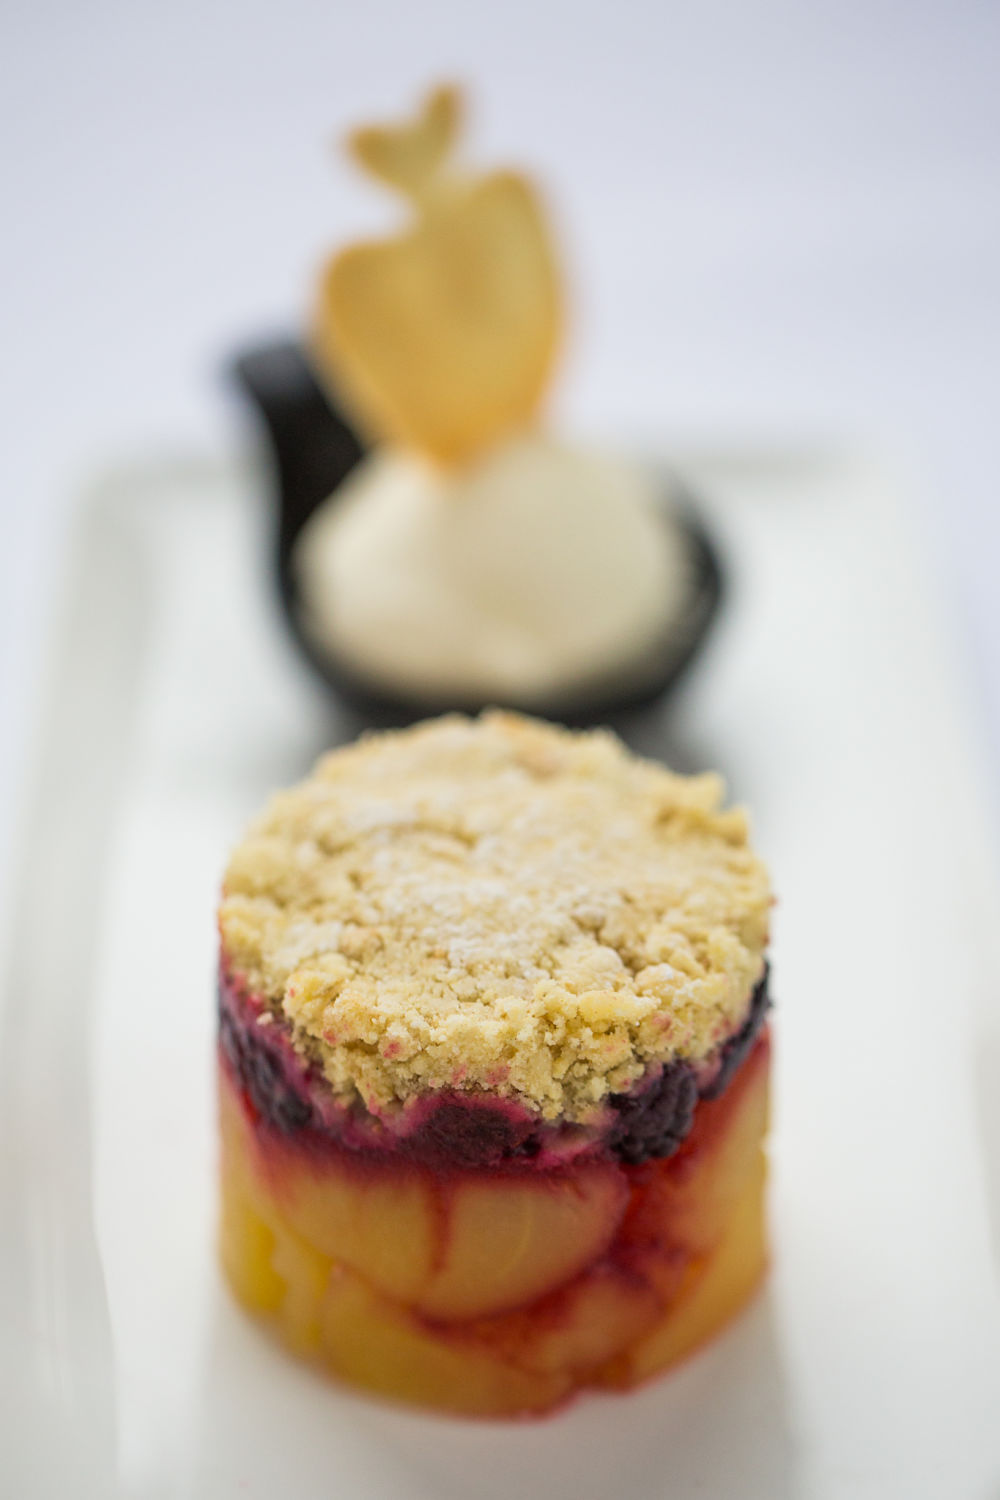 Apple and Blueberry Crumble with Vanilla Pod Ice Cream